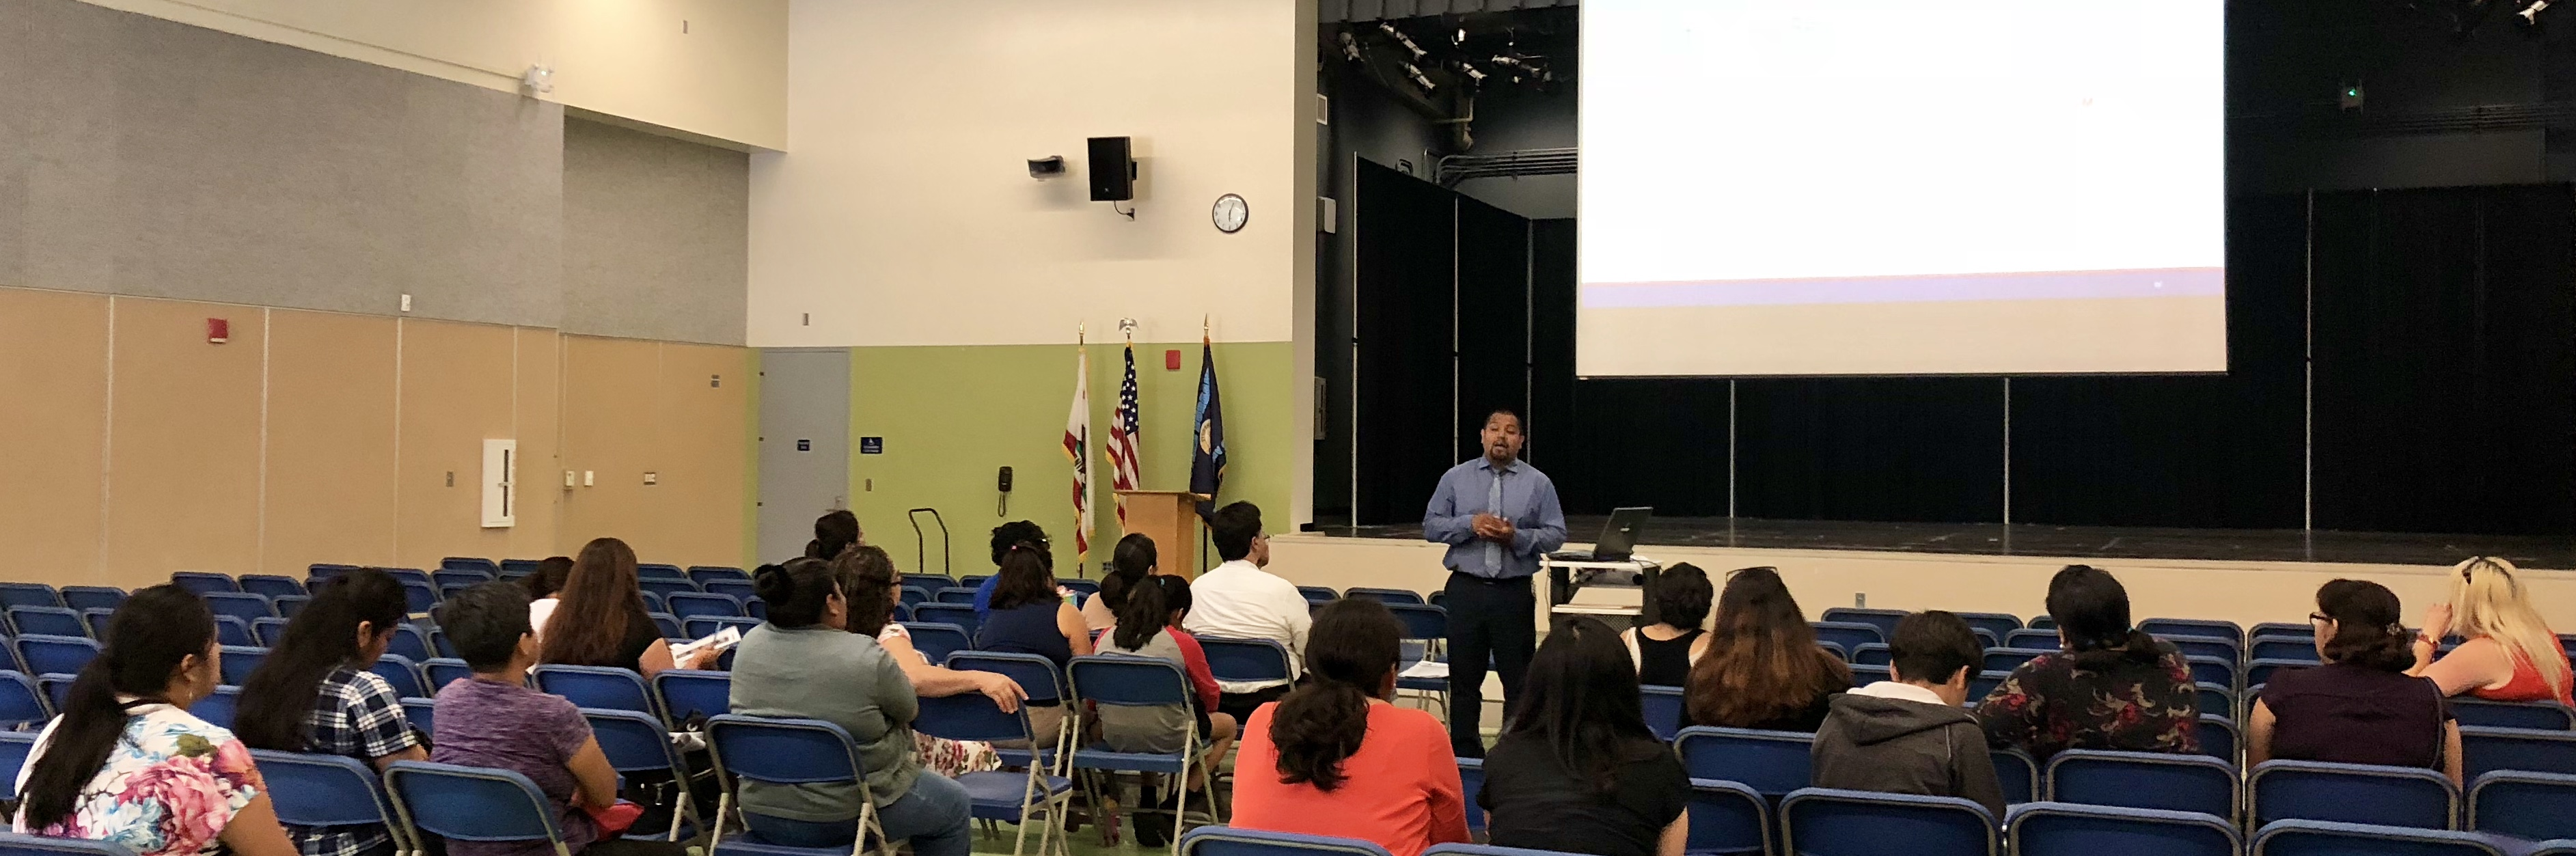 My_office_and_the_Housing___Community_Investment_Department_were_happy_to_provide_a_Rent_Stabilization_Ordinance_Renter's_Rights_information_session_for_parents_at_Luther_Burbank_Middle_School._Please_continue_t.jpg